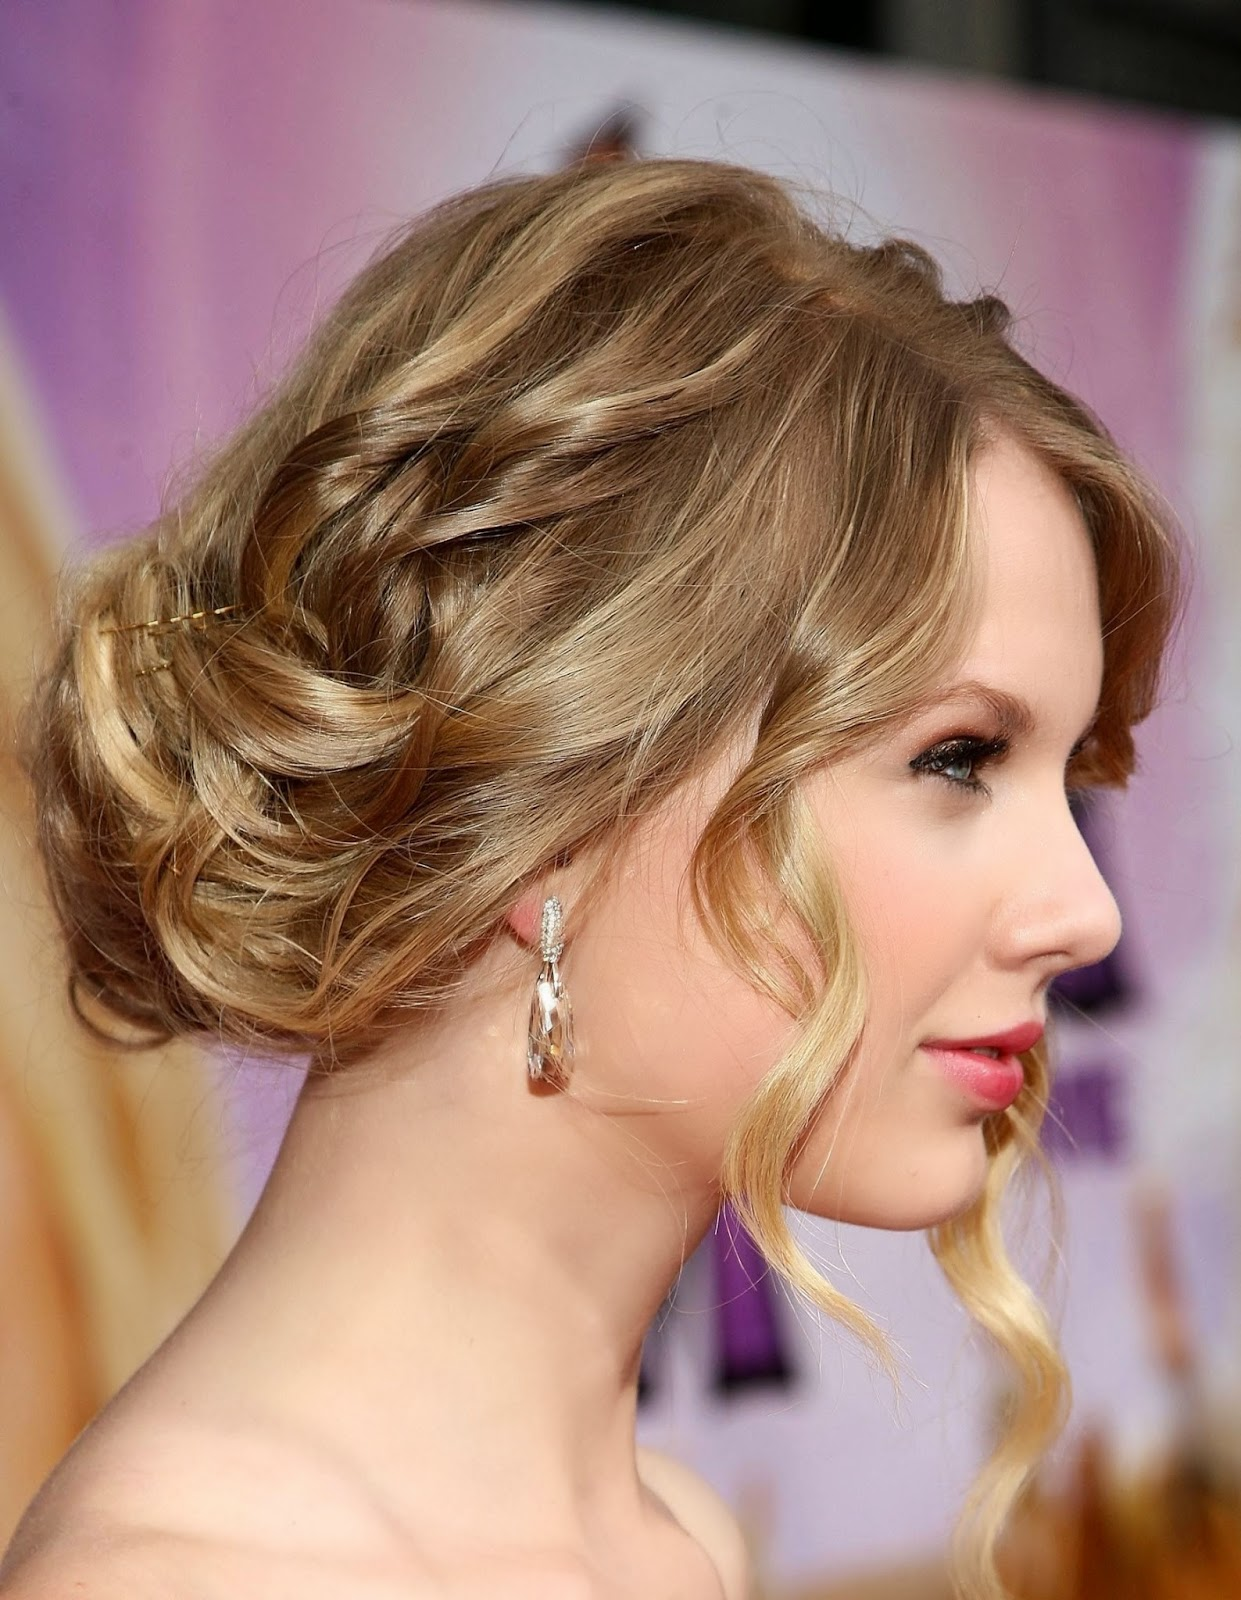 popular hairstyles 2014.